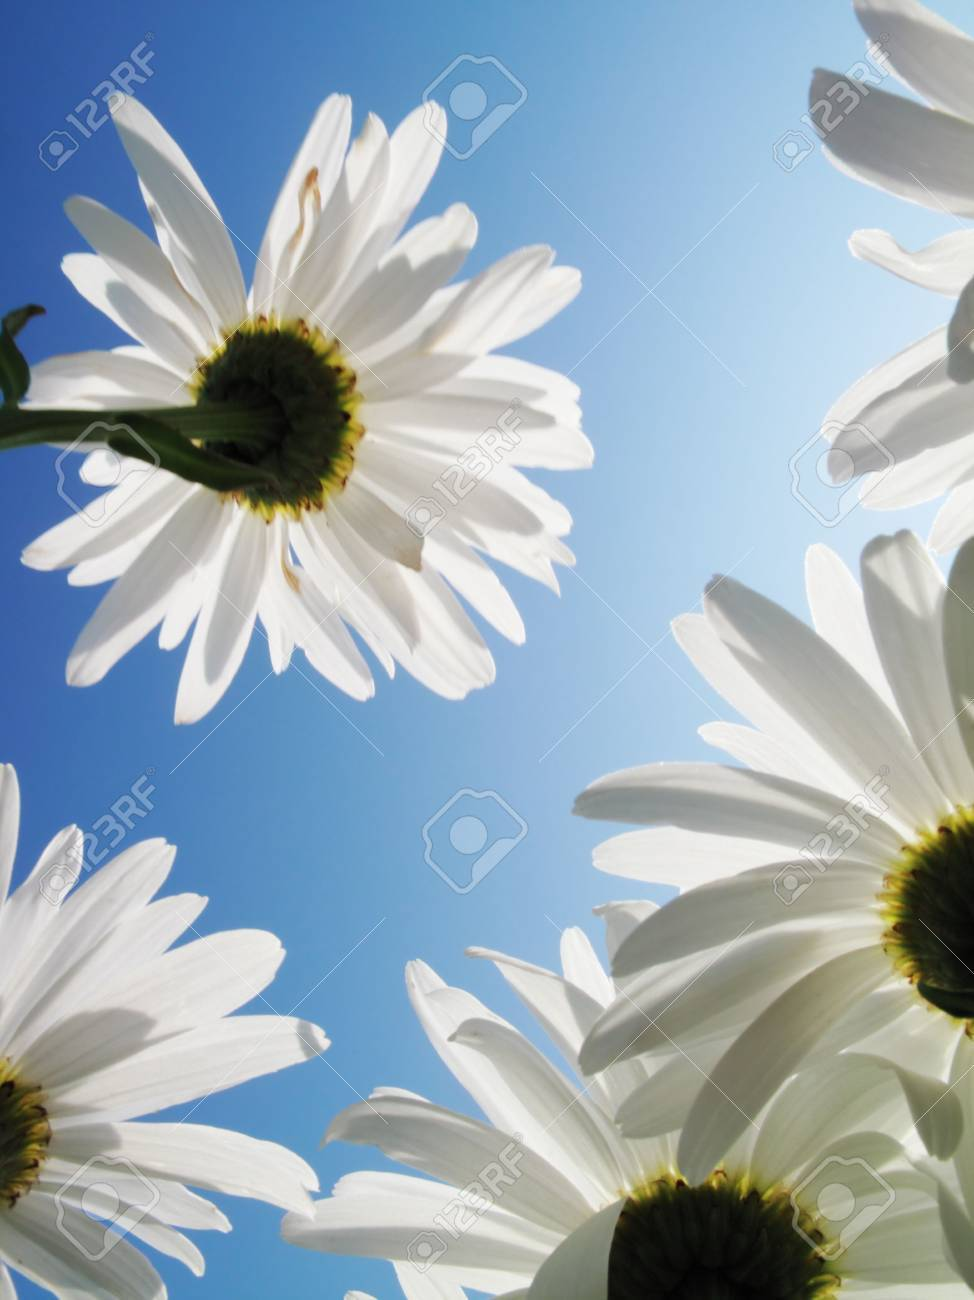 White daysies over blue sky. View from below. Stock Photo - 5948460